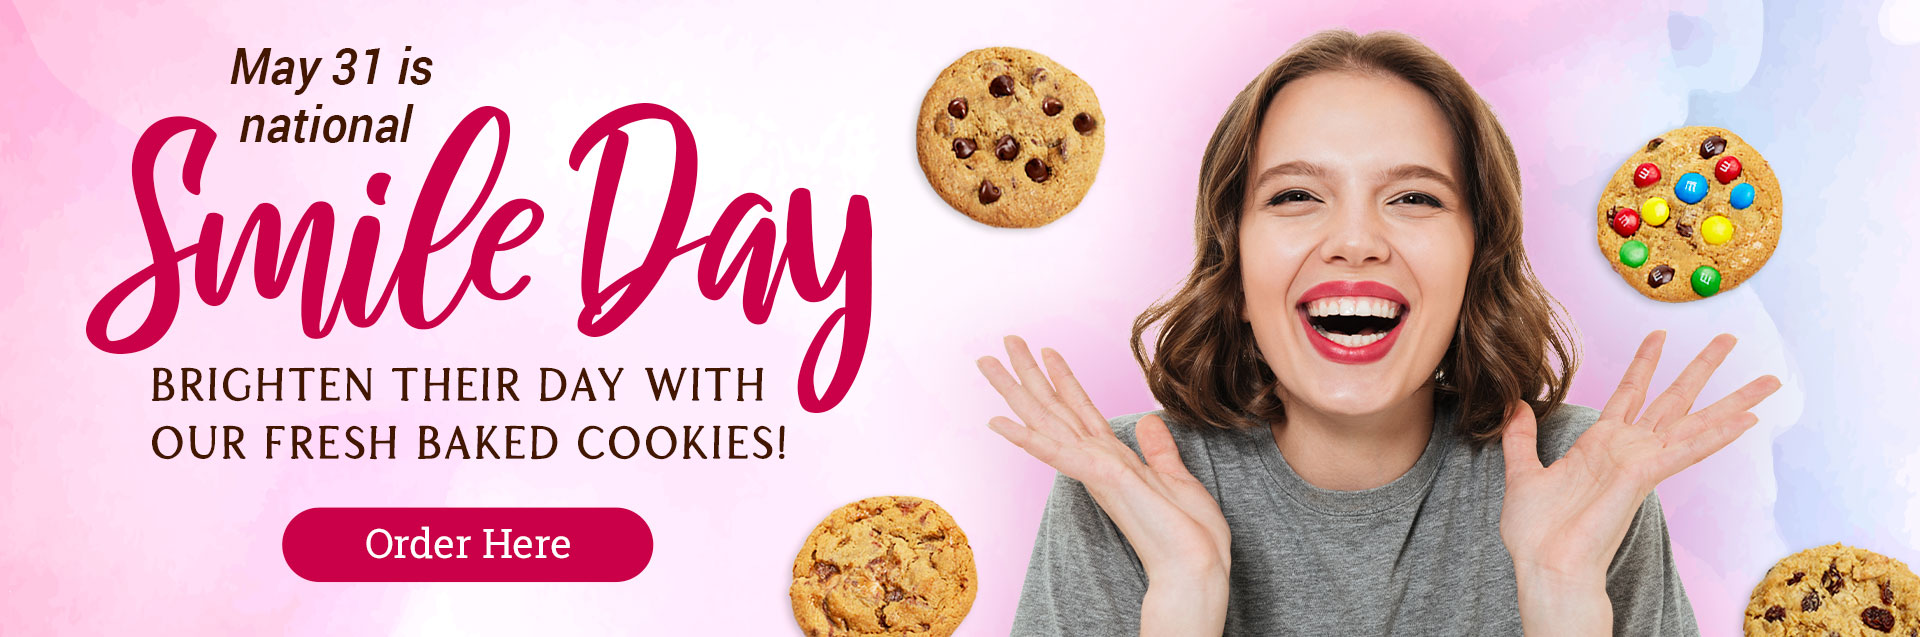 Celebrate National Smile Day with Fresh Baked Cookies from Hope's Cookies - May 31